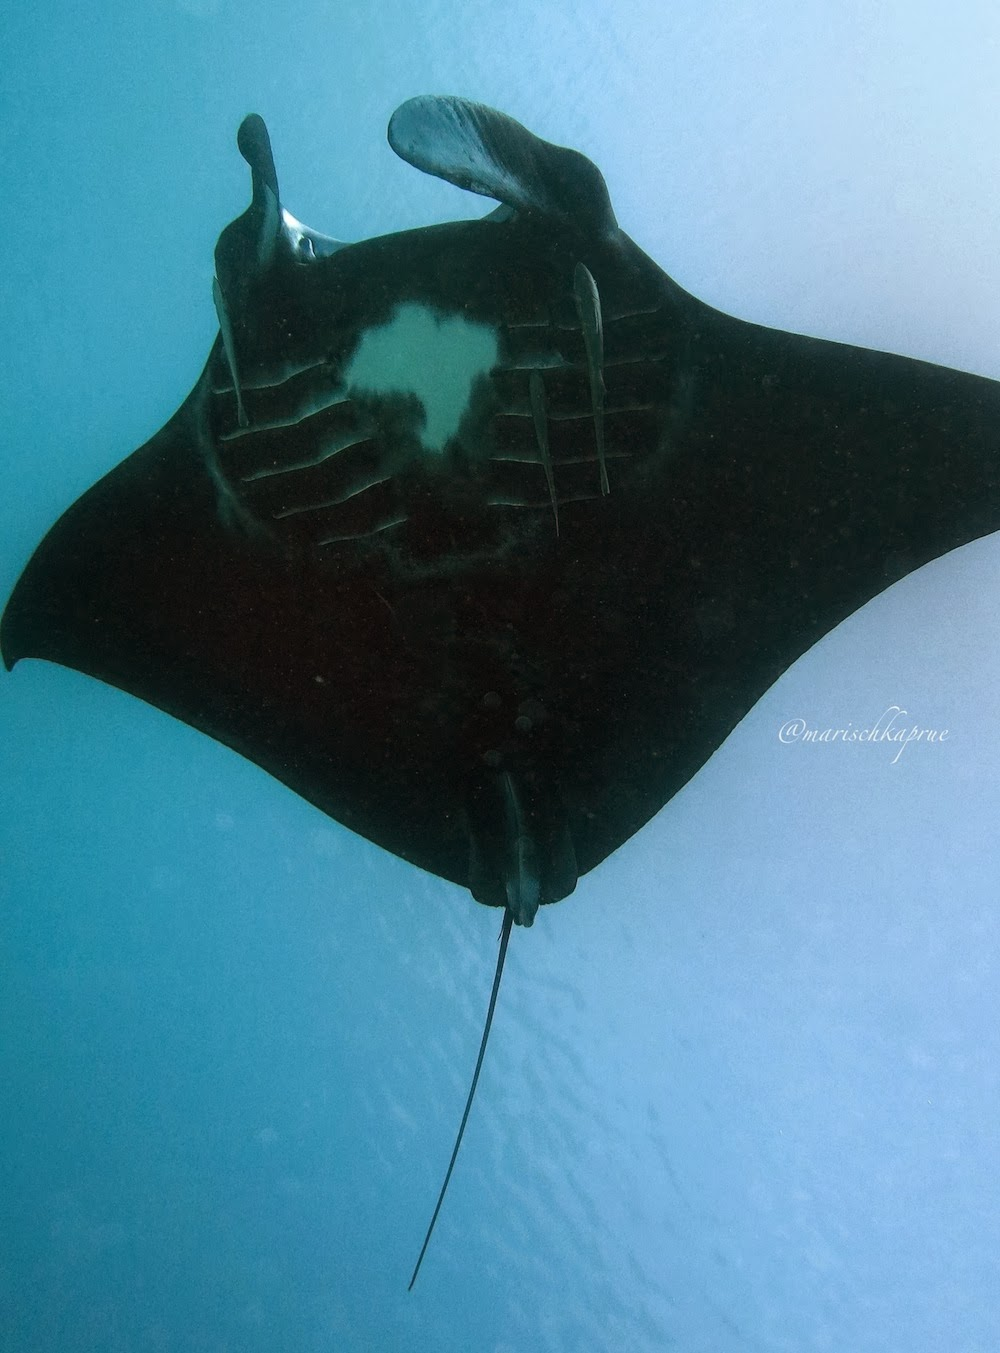 "<a href=""http://mataram.info/things-to-do-in-bali/visitindonesia-banda-marine-life-the-paradise-of-diving-topographic-point-inward-fundamental-maluku/"">Indonesia</a>best destinations : Manta Exhibit At Manta Sandy, Raja Ampat"